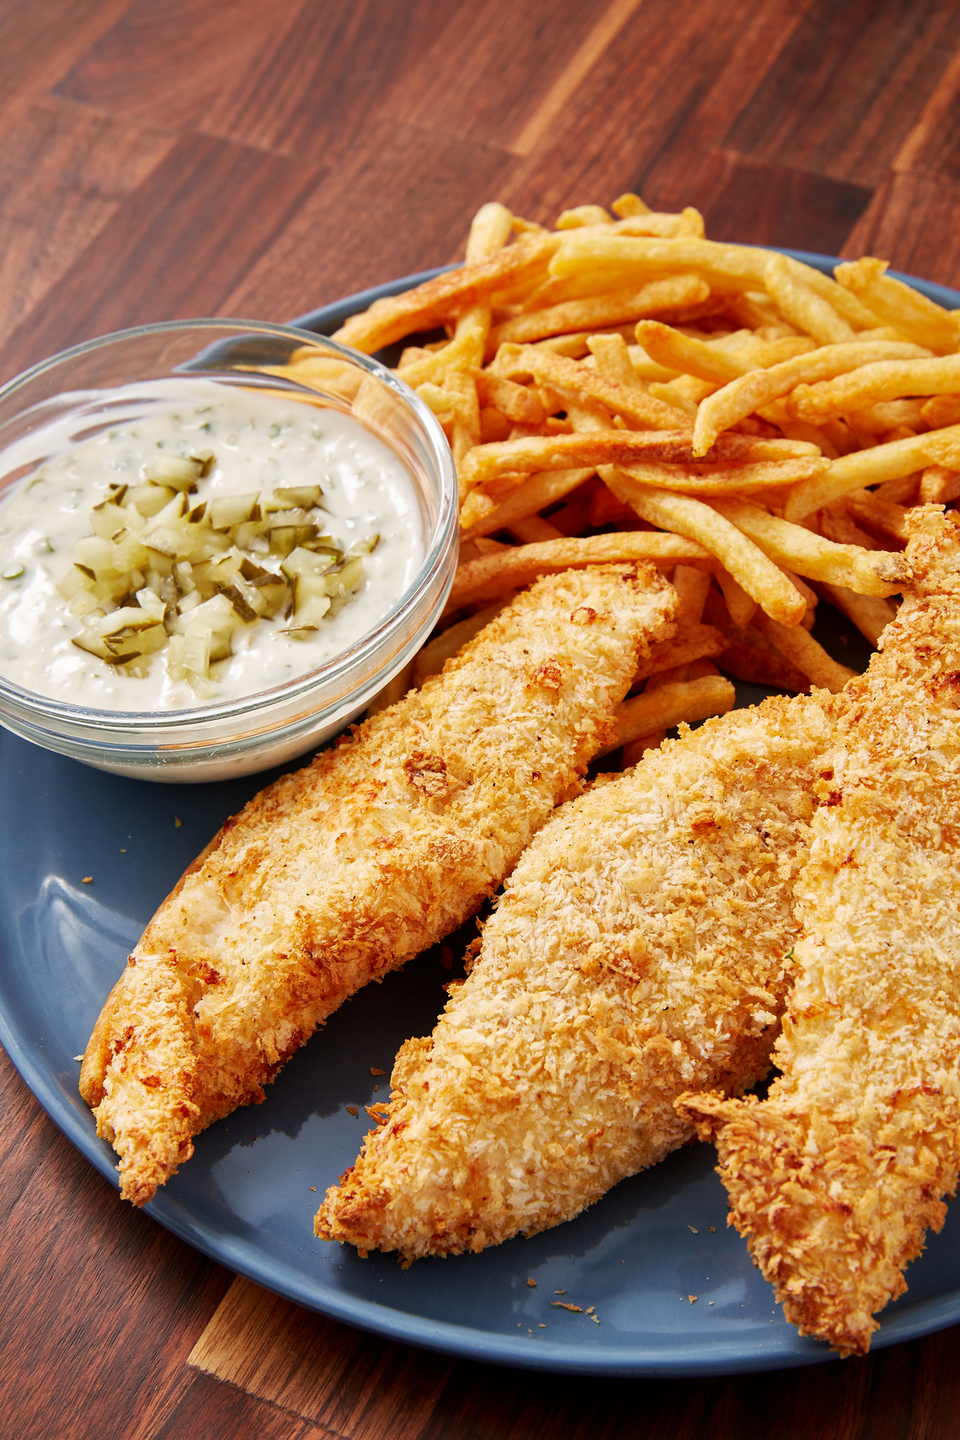 """<p>Same crunch as the classic, but so much easier to cook. </p><p>Get the recipe from <a href=""""https://www.delish.com/cooking/recipe-ideas/a28414646/air-fryer-fish-recipe/"""" rel=""""nofollow noopener"""" target=""""_blank"""" data-ylk=""""slk:Delish"""" class=""""link rapid-noclick-resp"""">Delish</a>.</p>"""